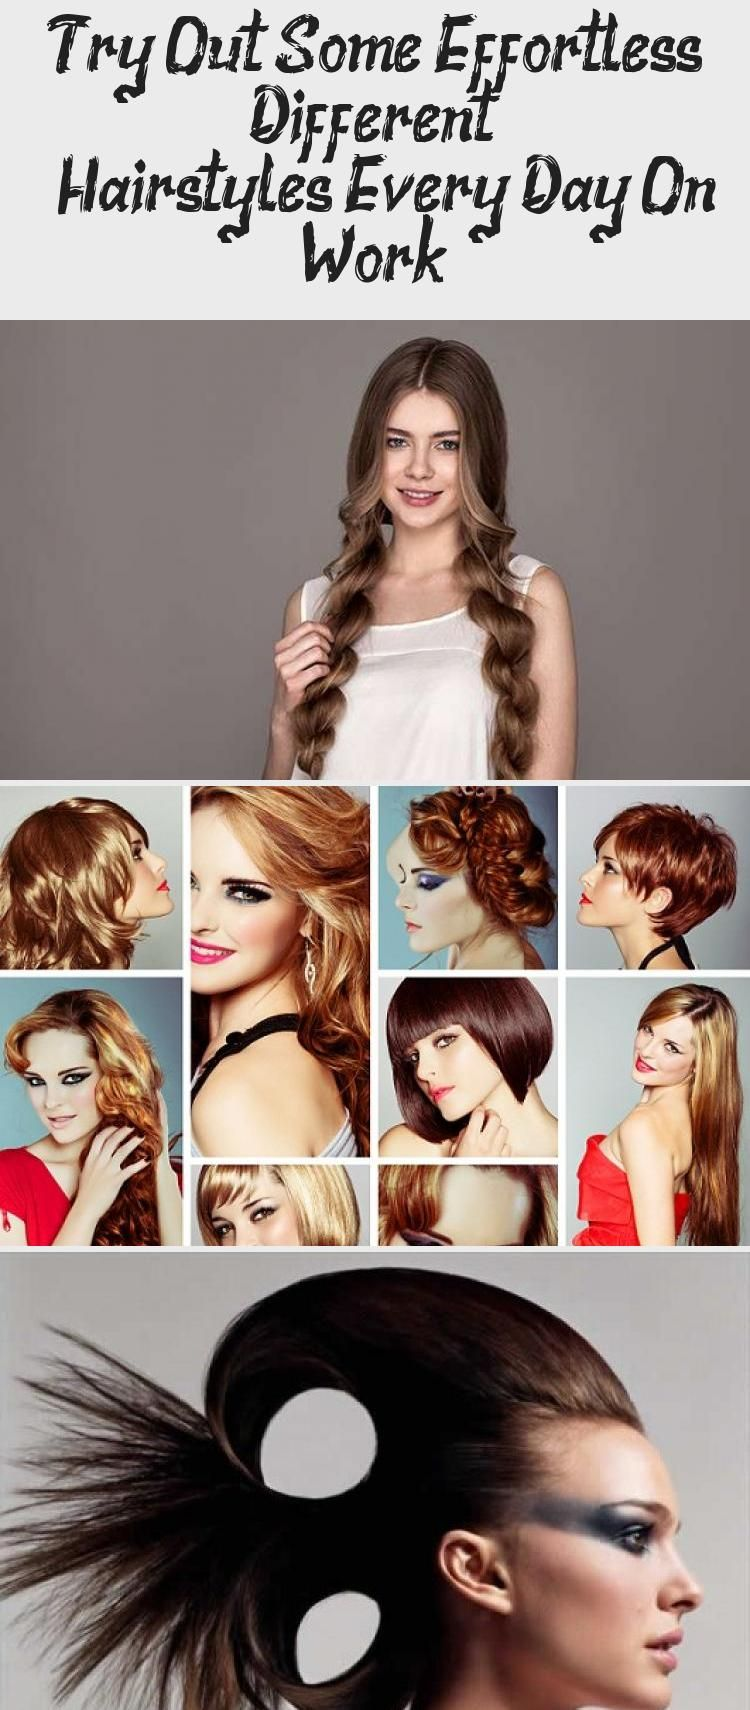 Try Out Some Effortless Different Hairstyles Every Day On Work 7 Easy Everyd In 2020 Cute Hairstyles For Short Hair Short Hairstyles For Thick Hair Thick Hair Styles